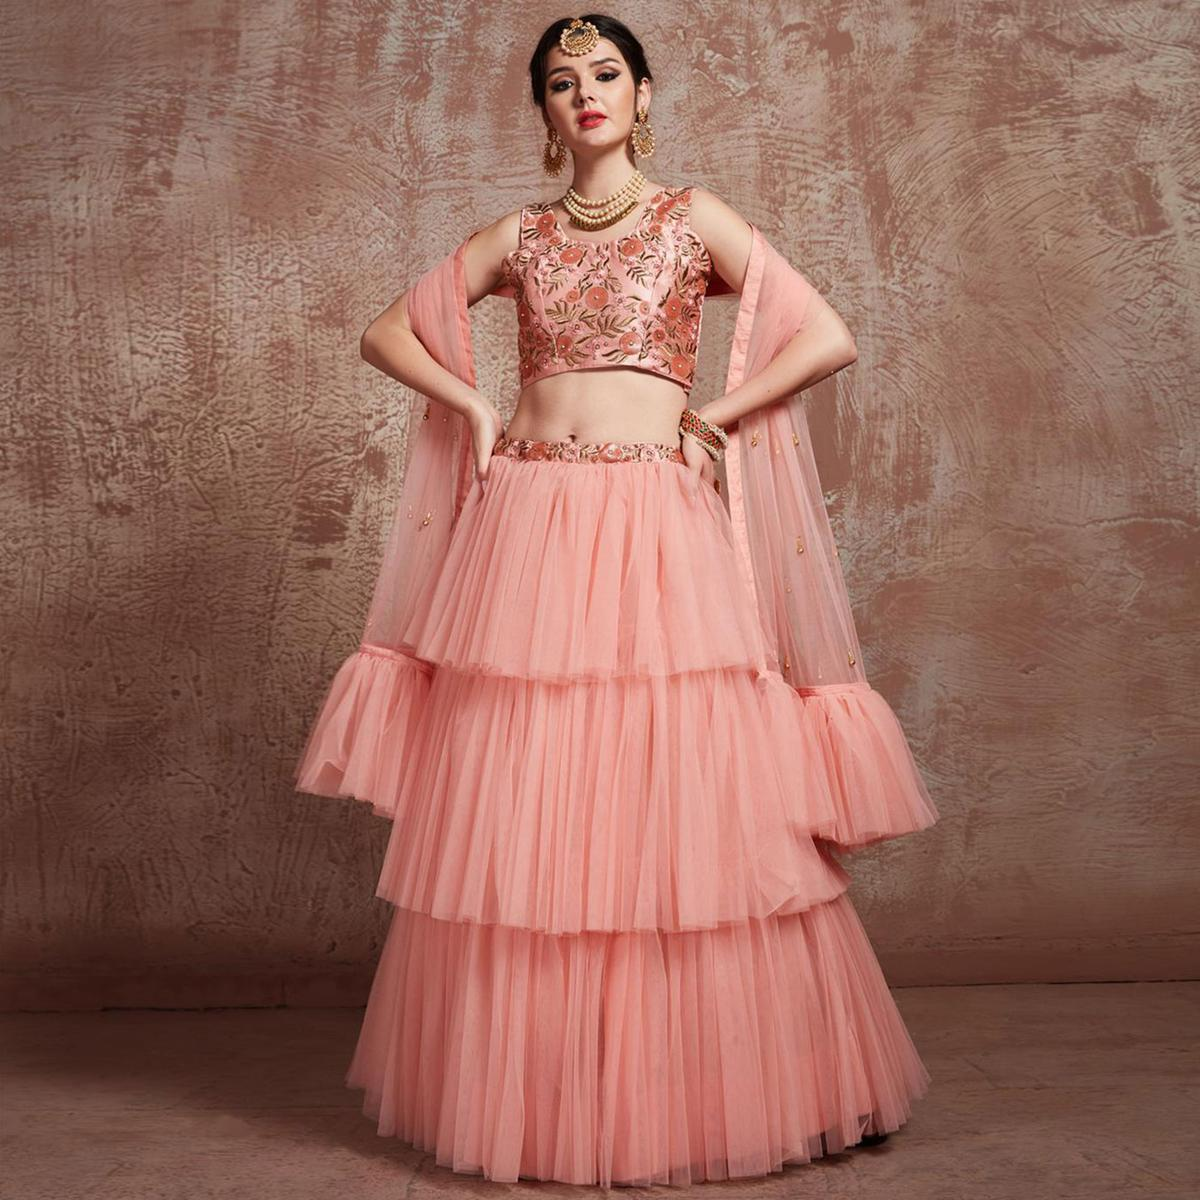 Marvellous Peach Colored Partywear Embroidered Soft Net Lehenga Choli